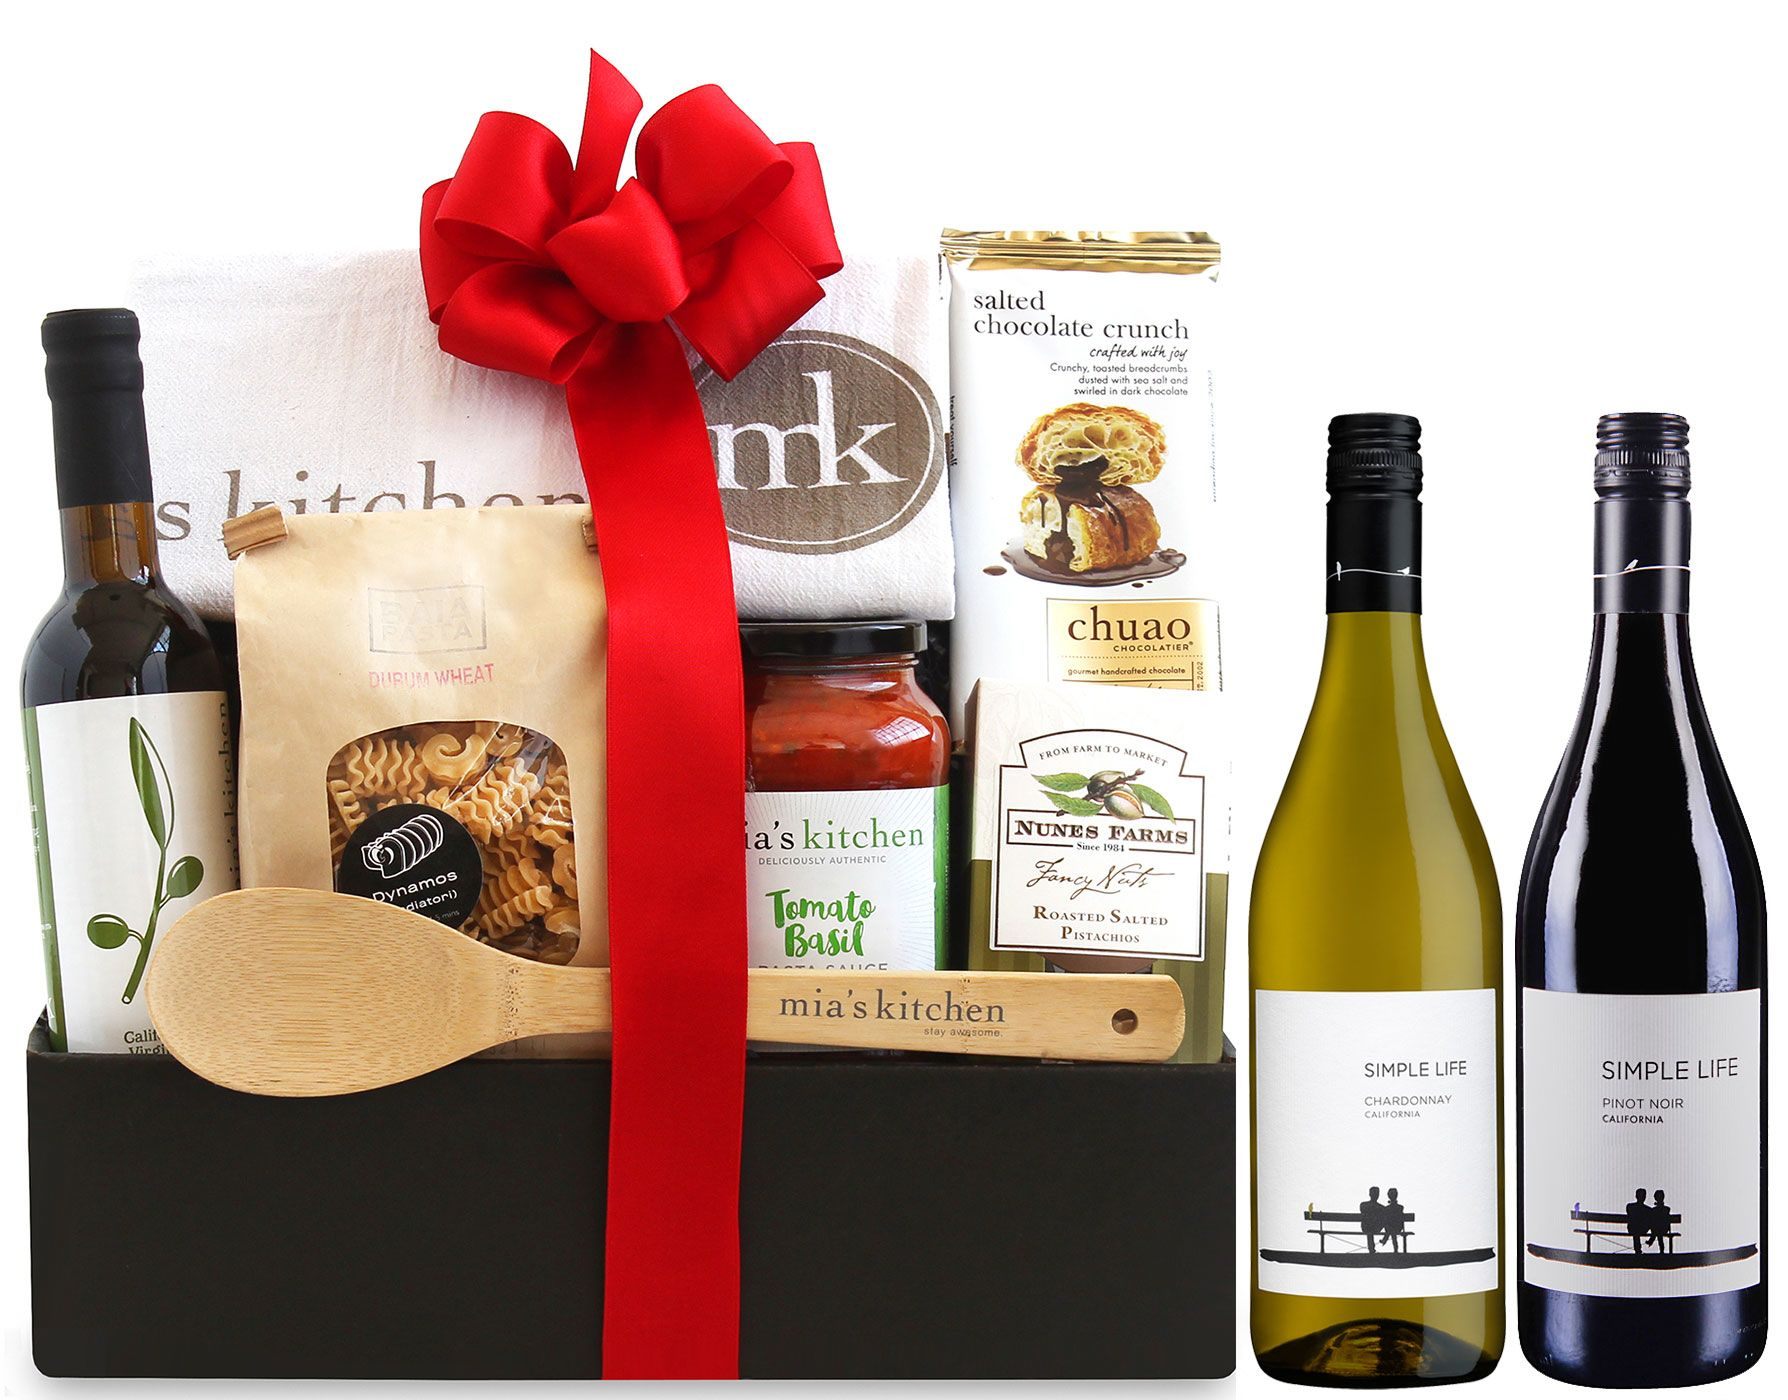 wine.com The Simple Life Italian Dinner Gift Basket  Gift Product Image